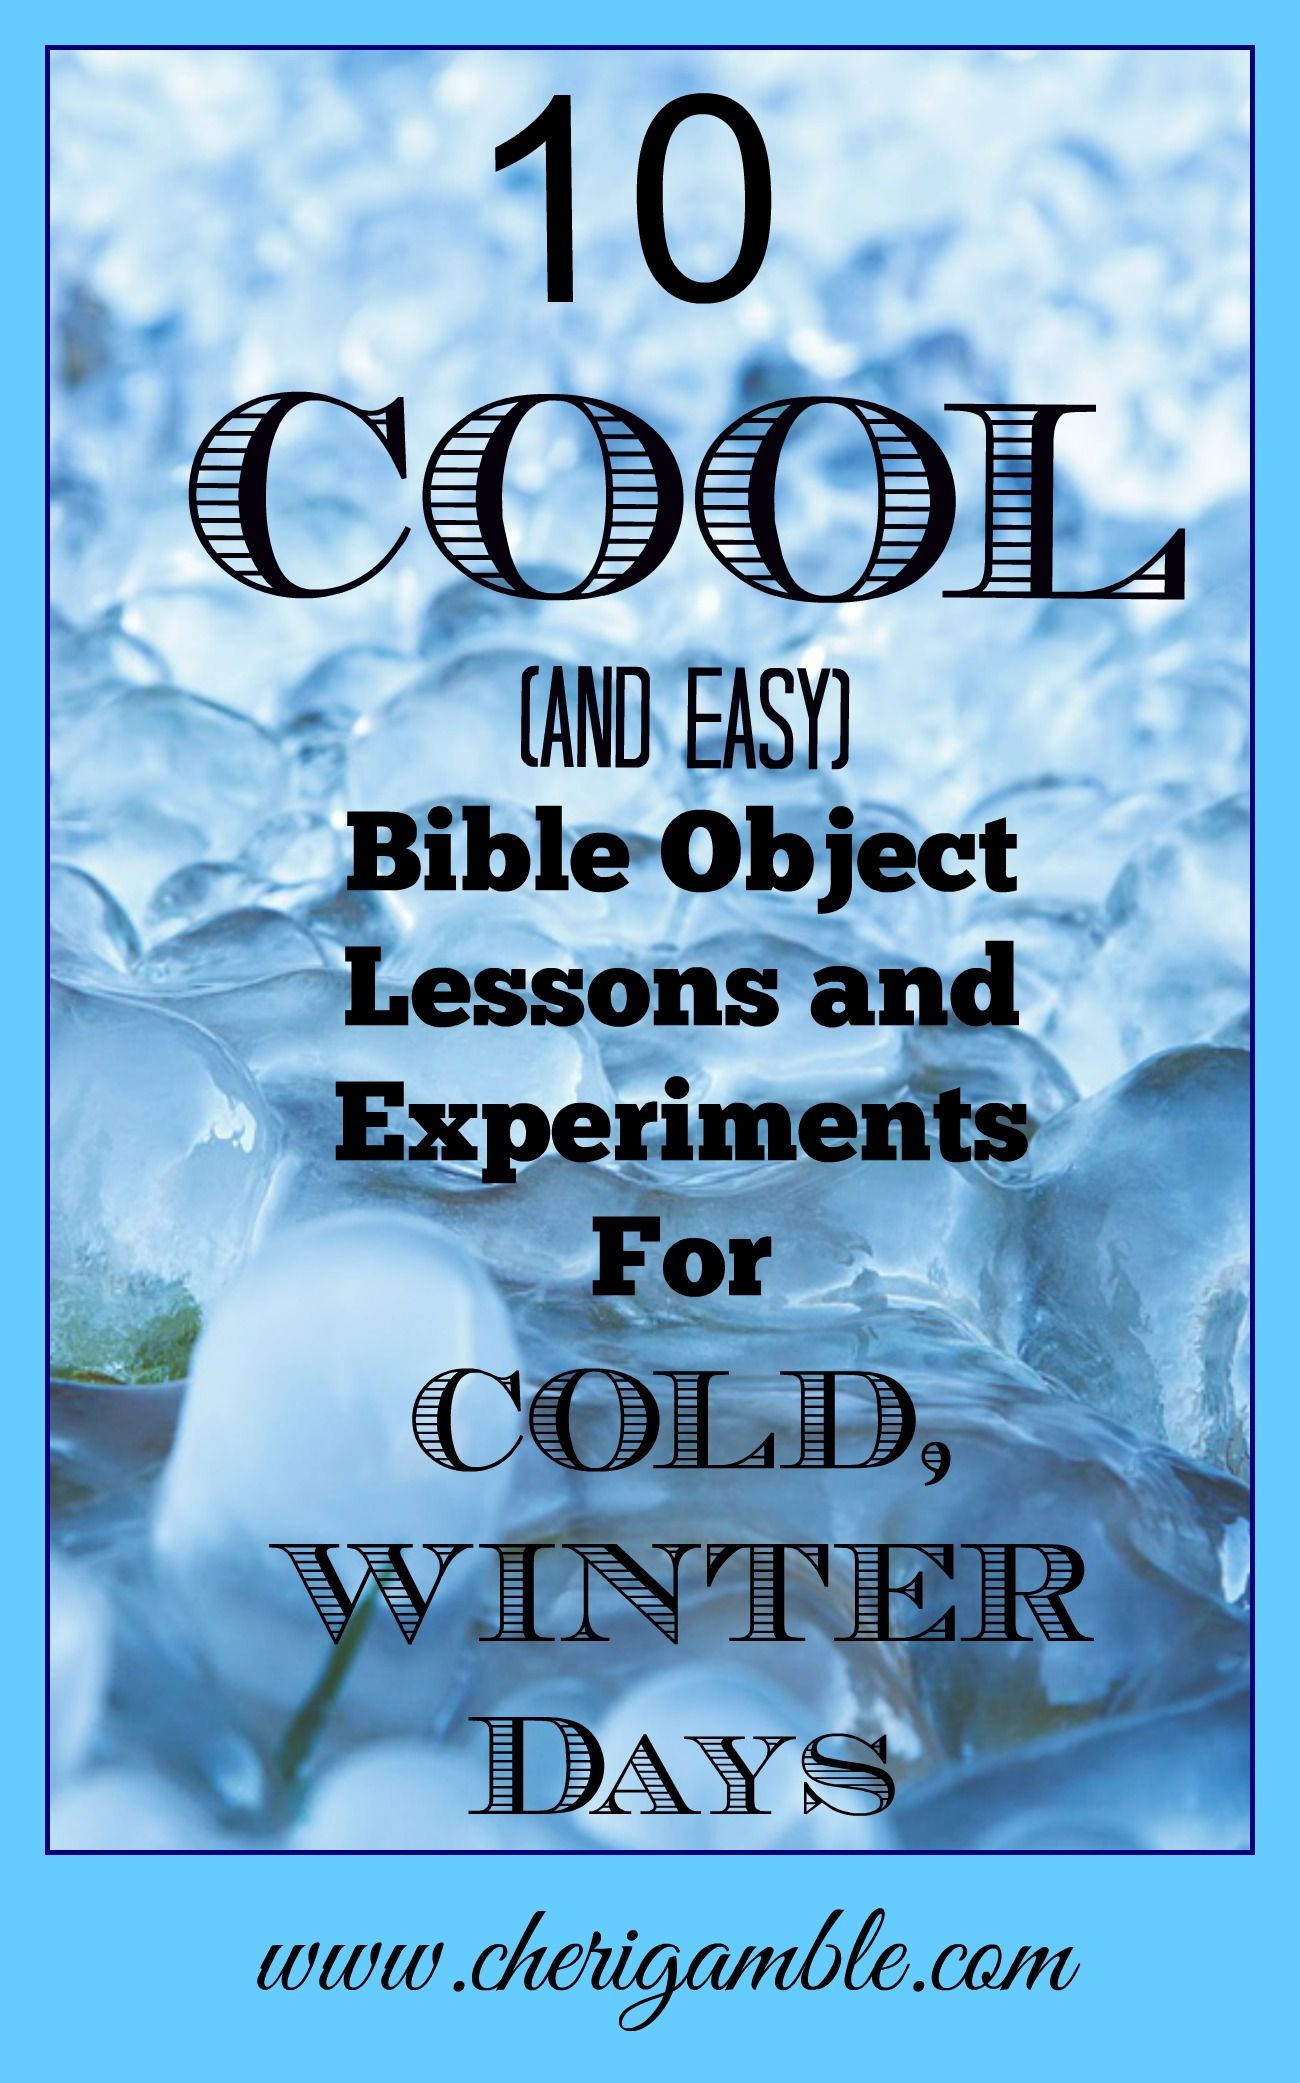 10 Cool and easy Bible Object Lessons and Experiments for Cold